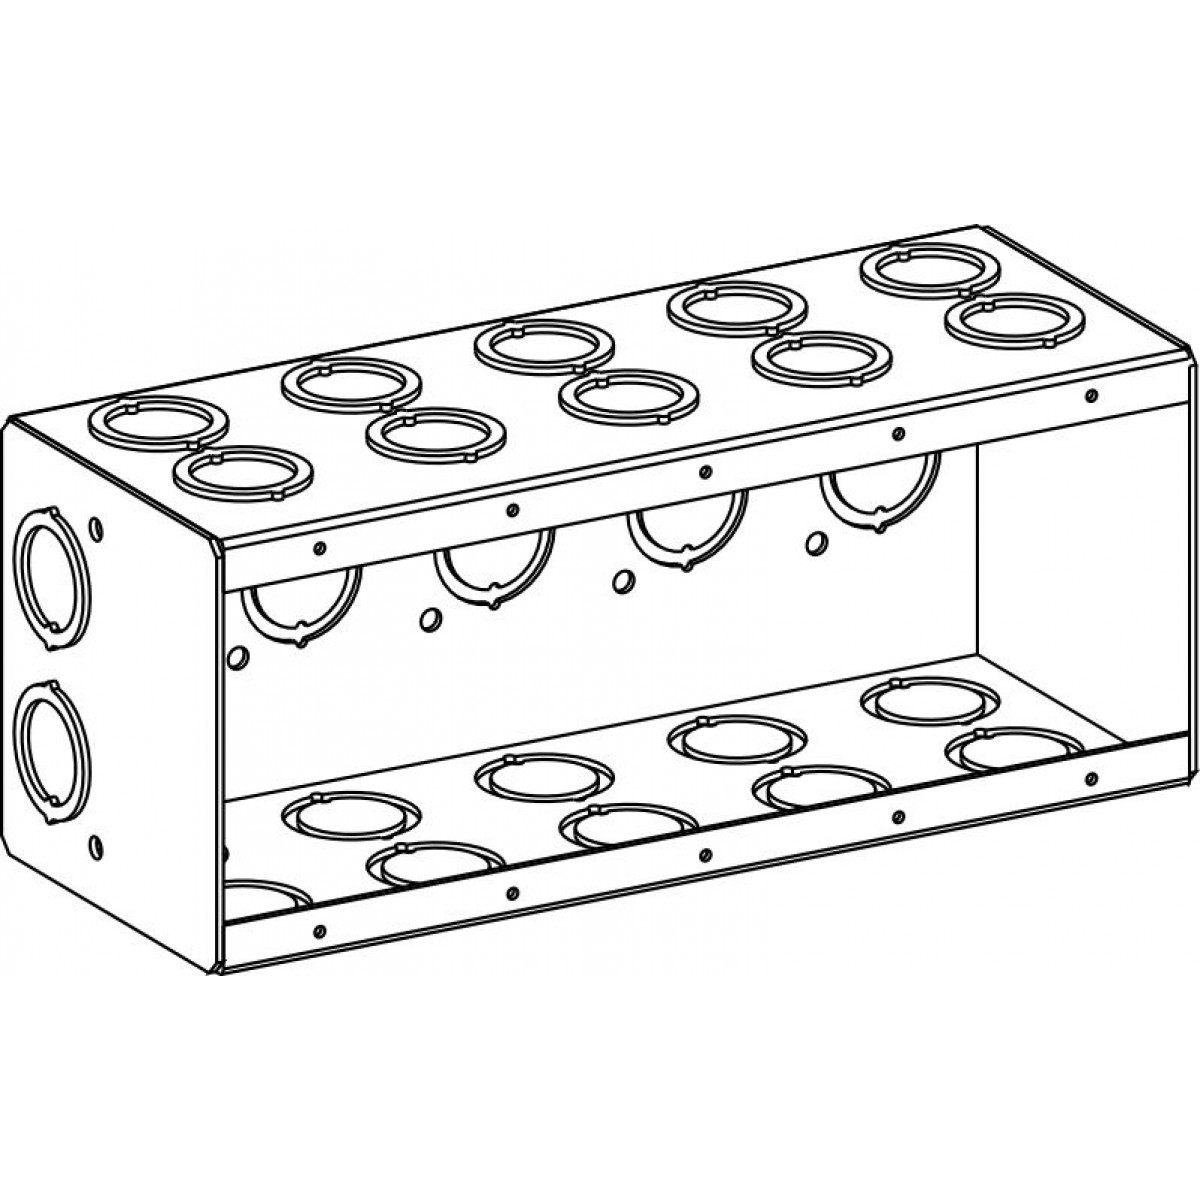 mb-5 - masonry boxes - electrical junction boxes